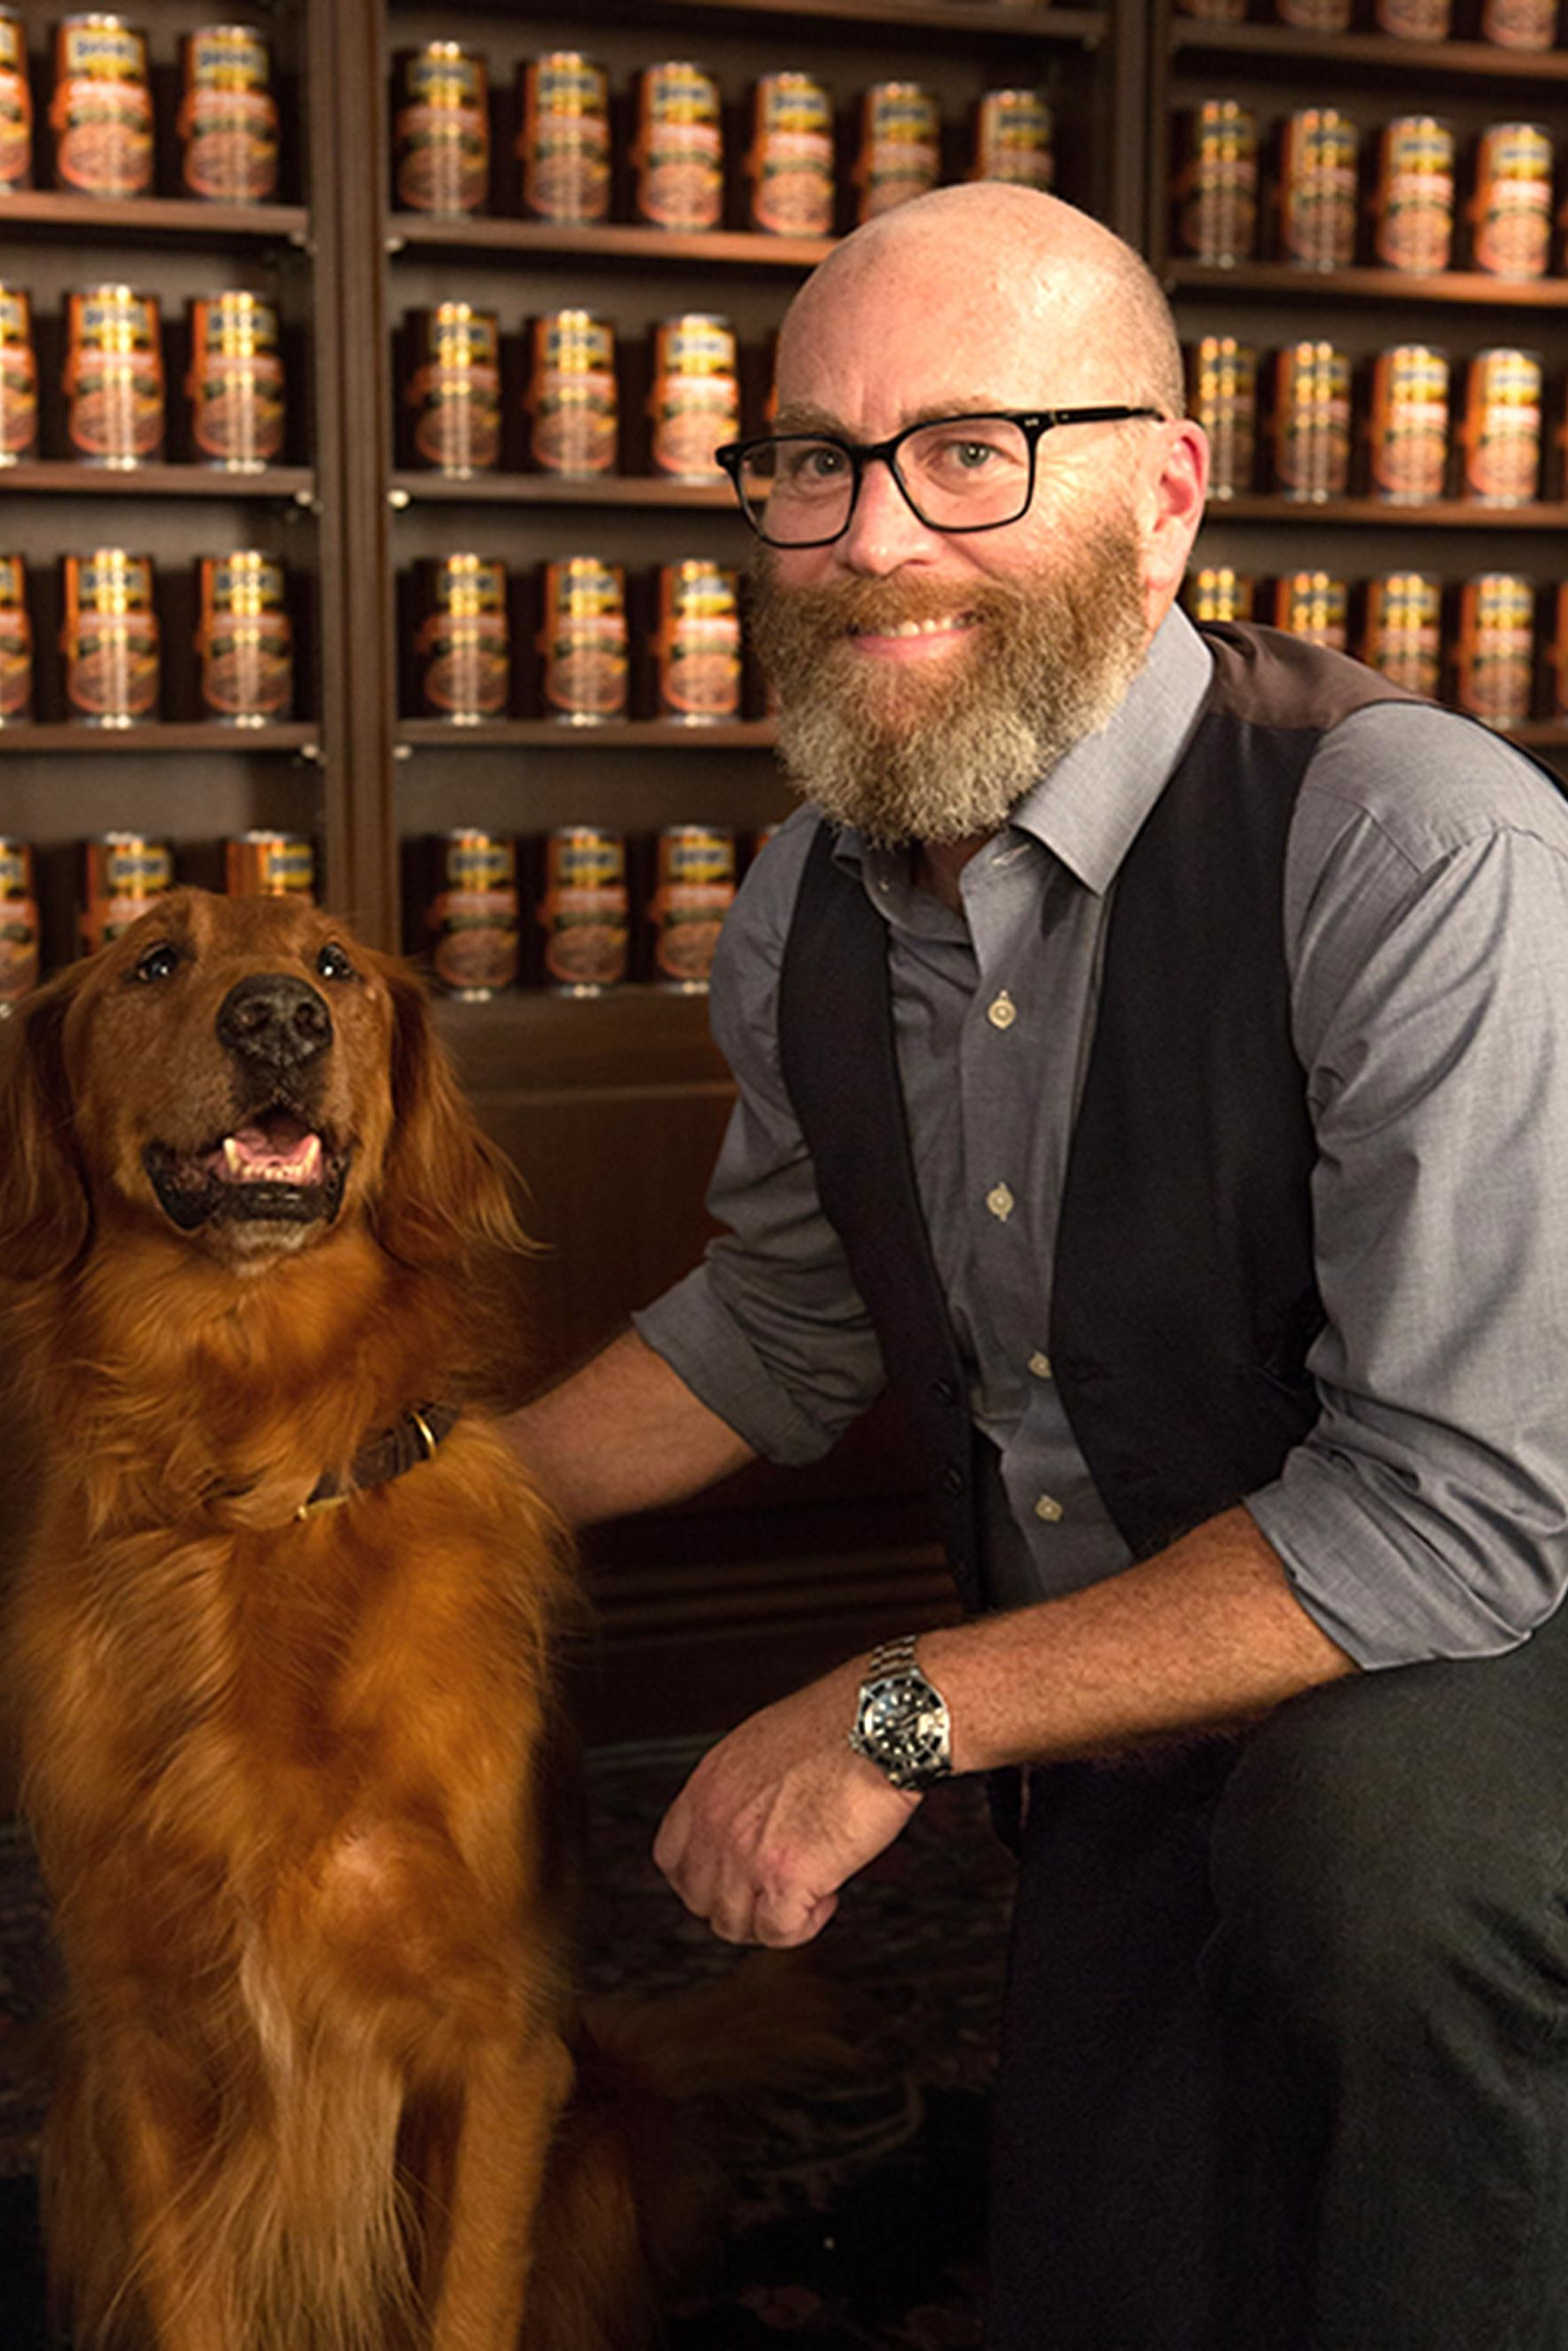 The Dog from the Bush's Baked Beans Commercials Is Alive and Well: Why Fans Were Confused About His Death